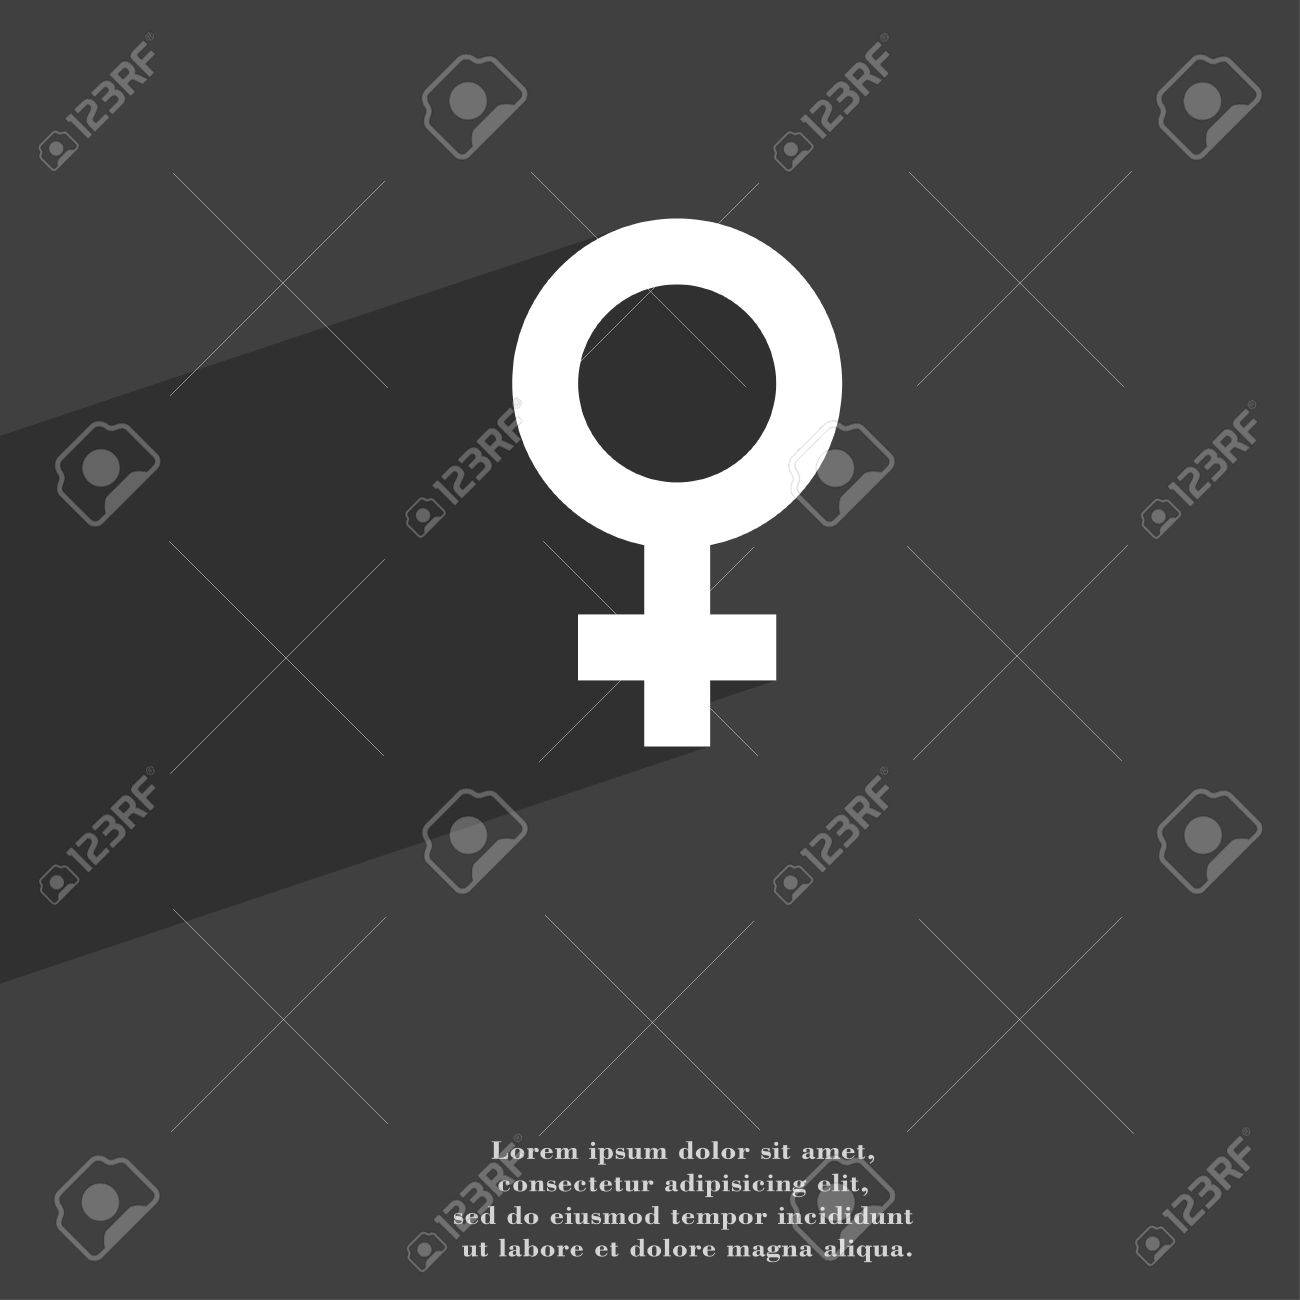 Symbols Gender Female Woman Sex Icon Symbol Flat Modern Web